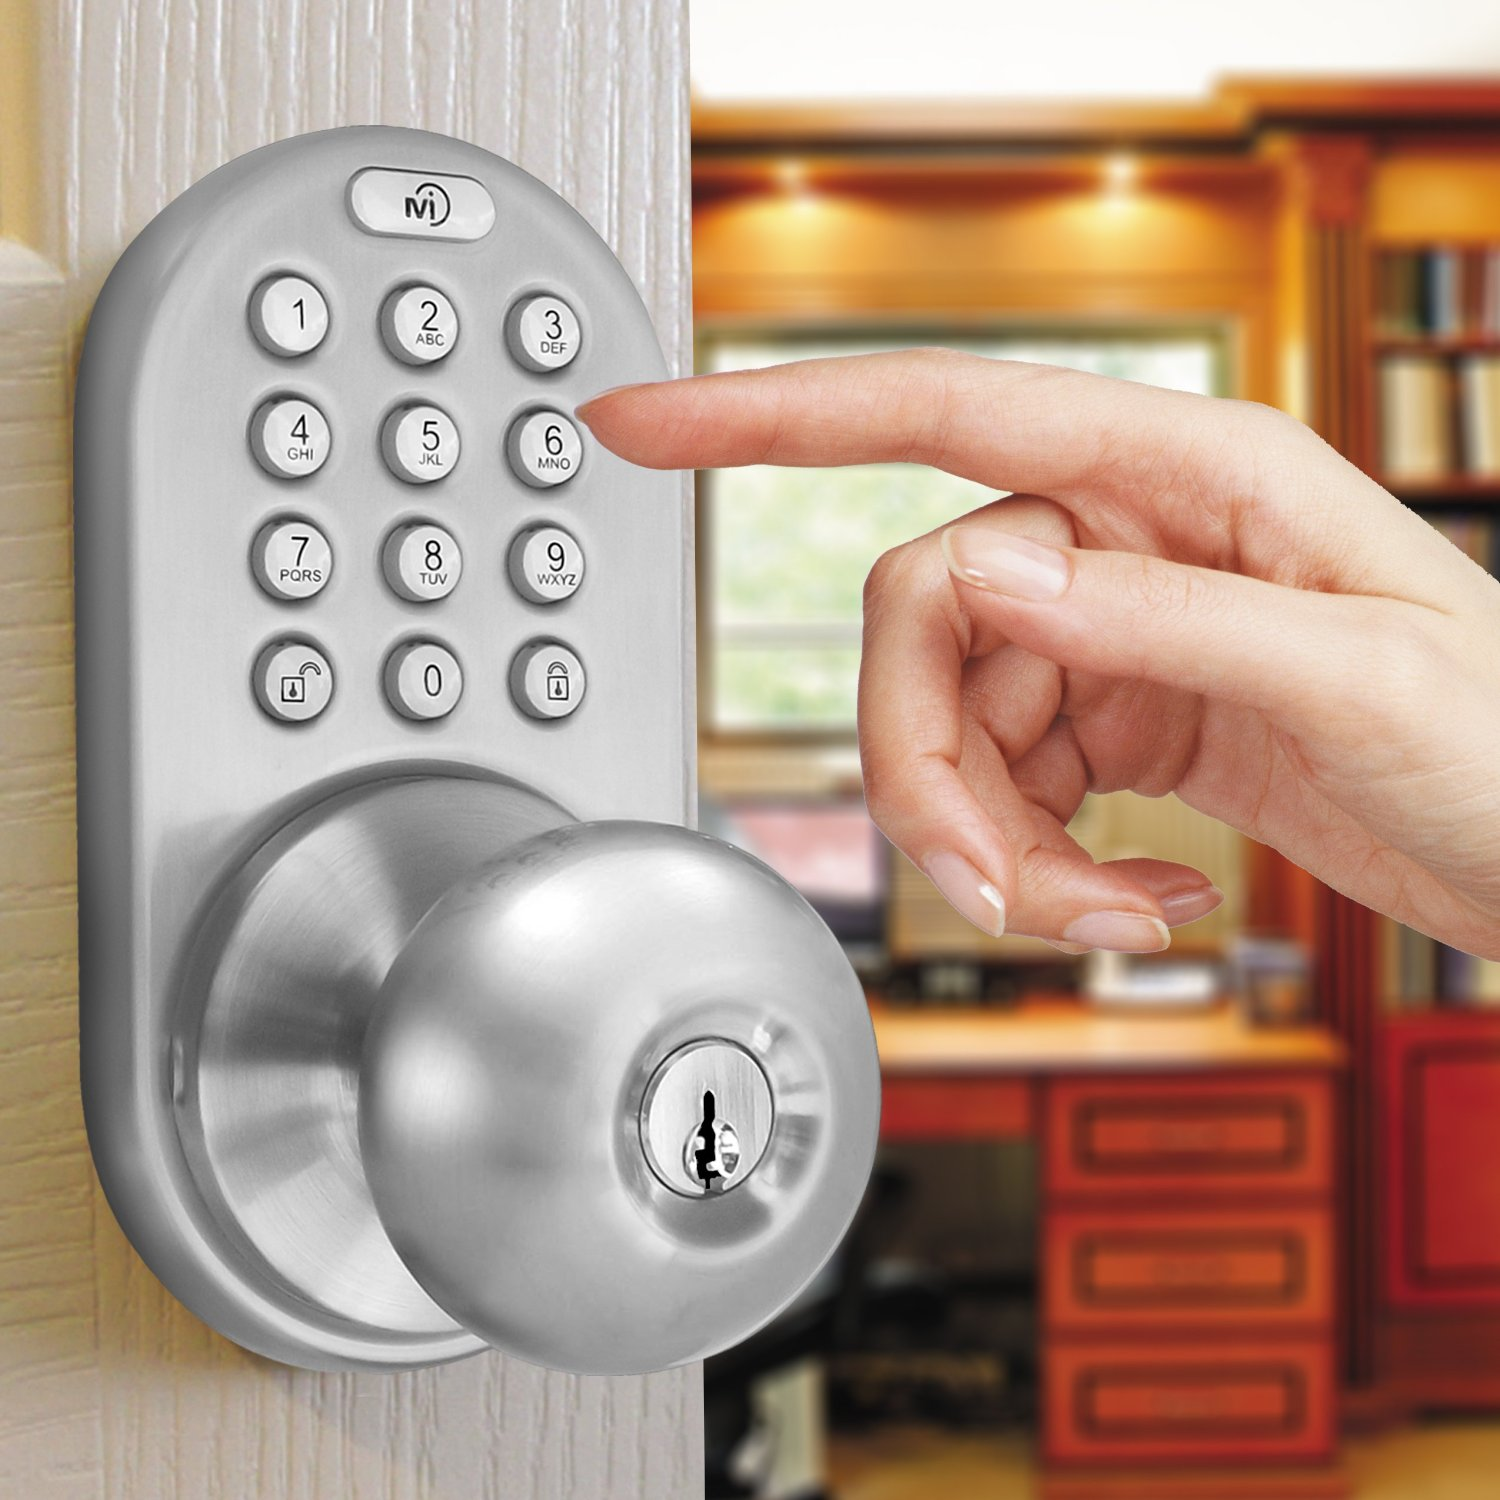 MiLocks DKK-02SN Electronic Keypad & Key Entry Door Knob - Tanga